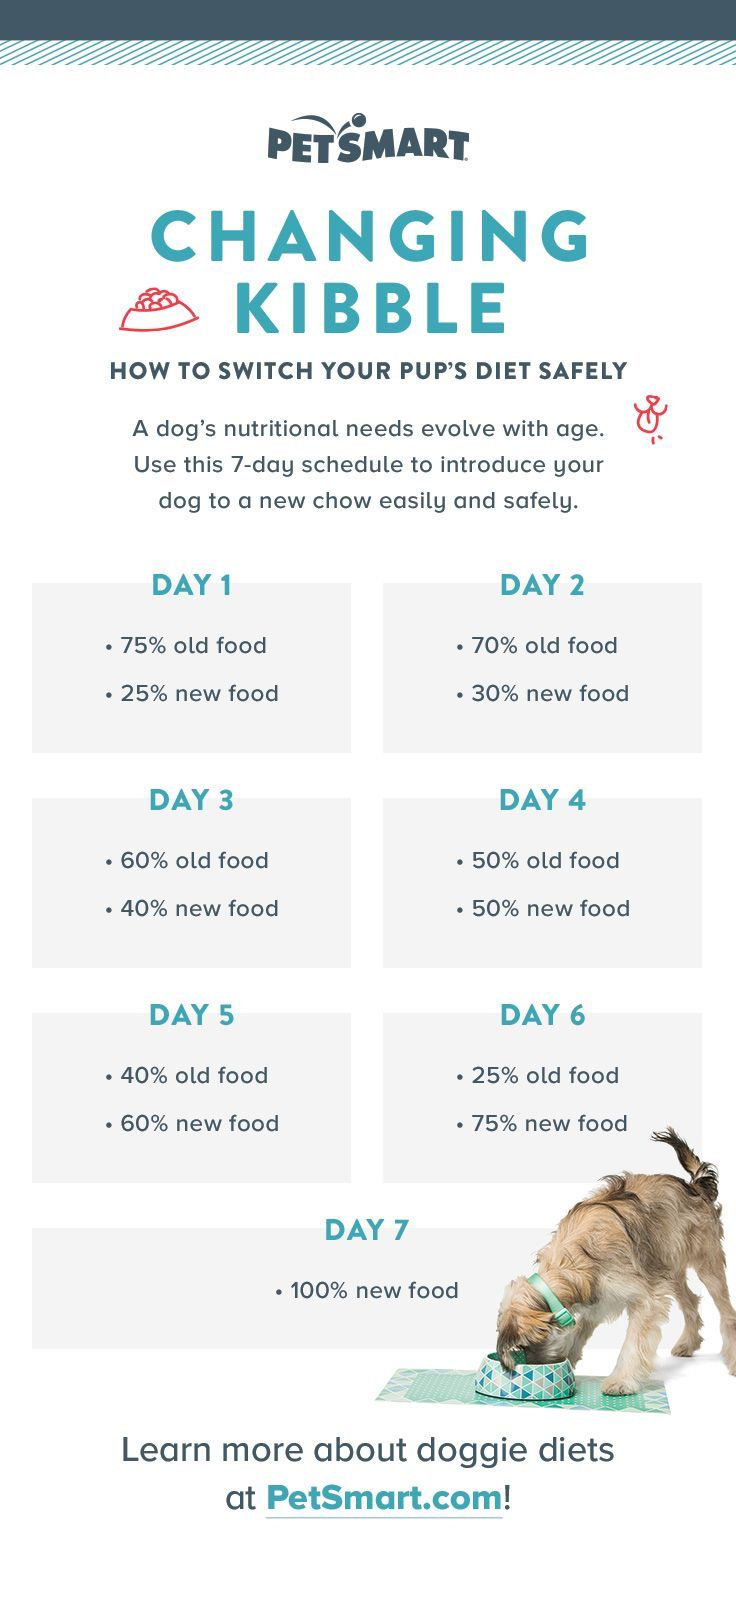 Are you transitioning your puppy from one food to another